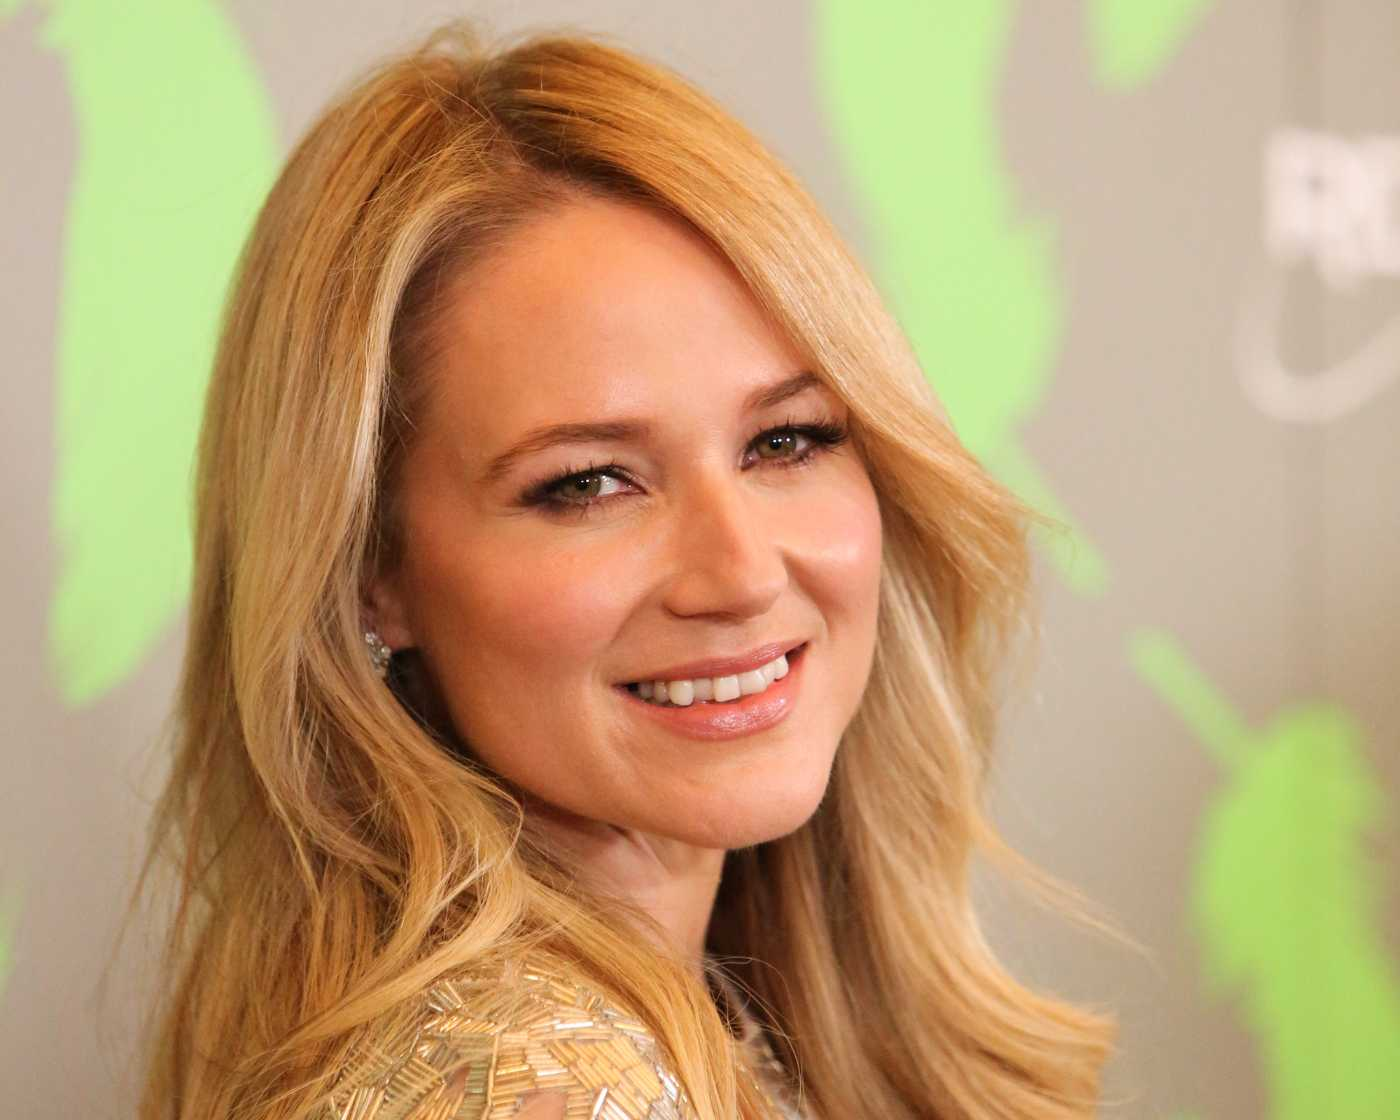 The Power of One: Jewel Joins The Fight with Cancer part 2